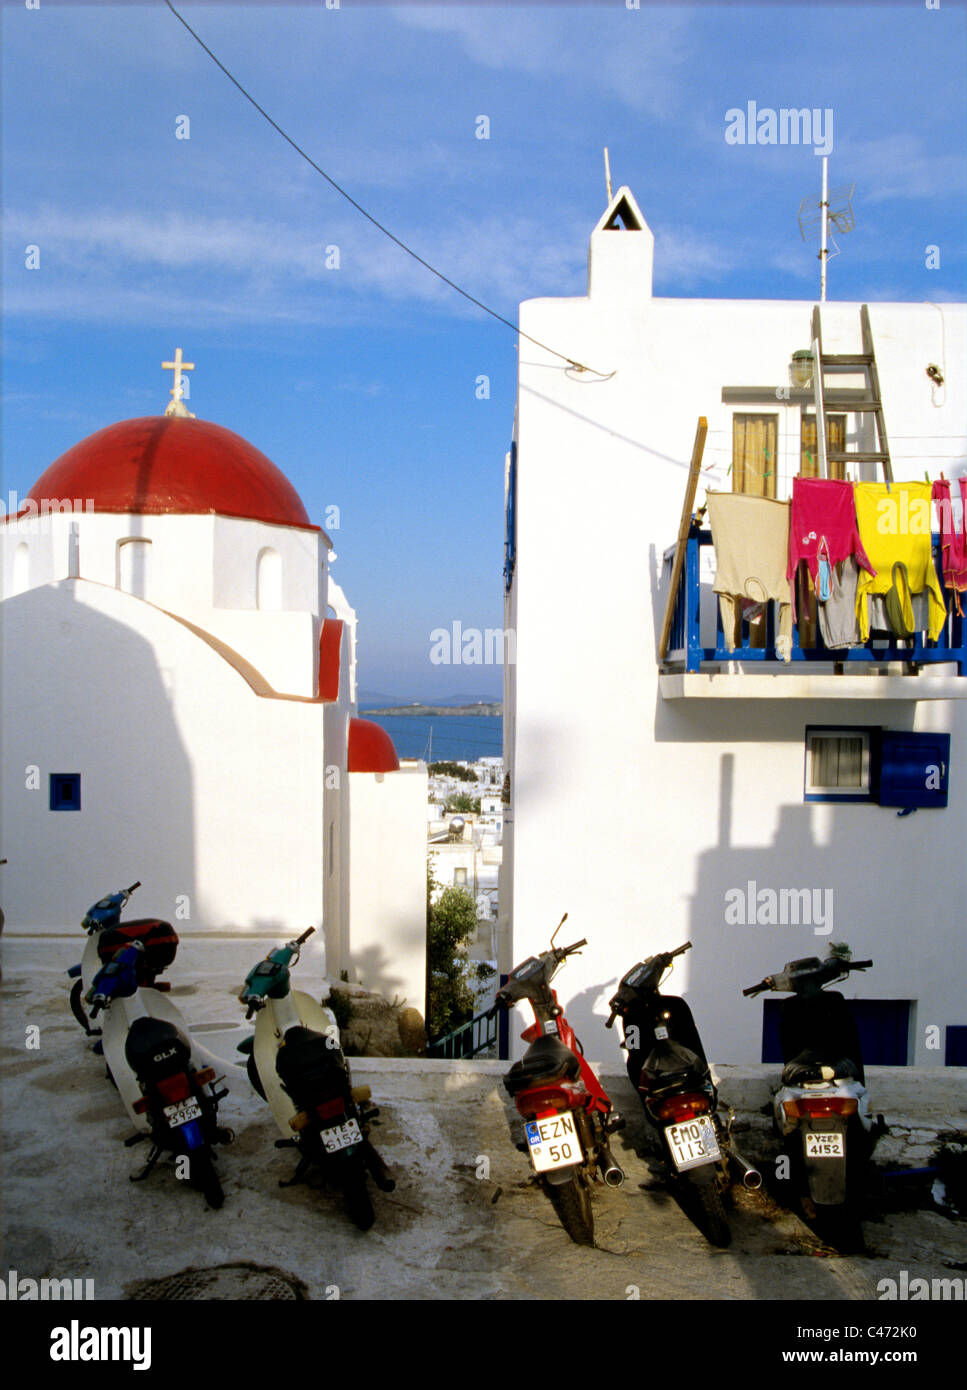 laundry hangs on porch above parked motor scooters in old town of Mykonos Greece - Stock Image